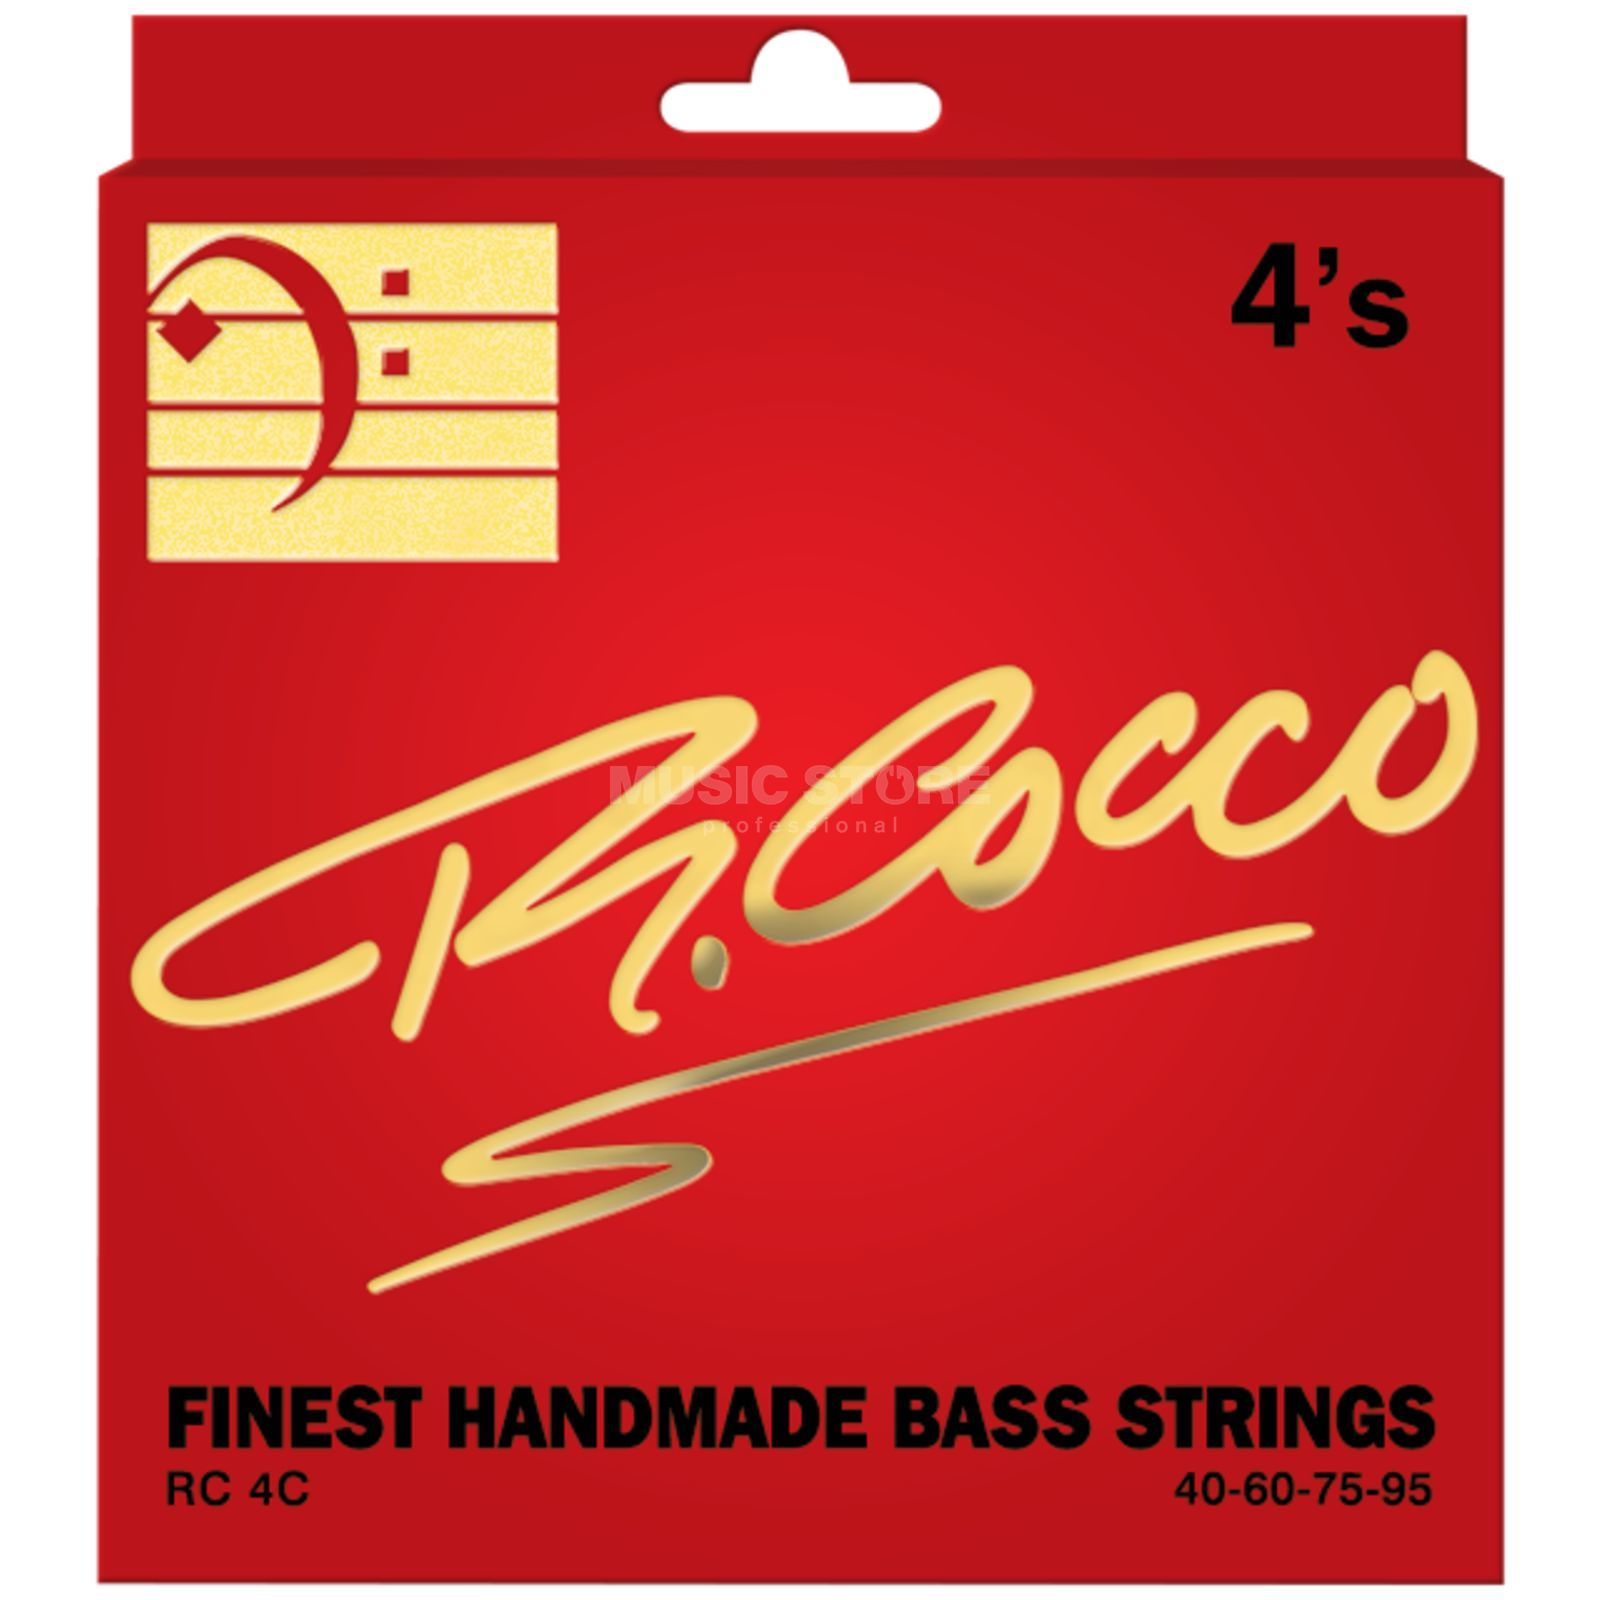 Cocco RC4C bas snaren 40-95, 4's 40-60-75-95 Classic wound Productafbeelding